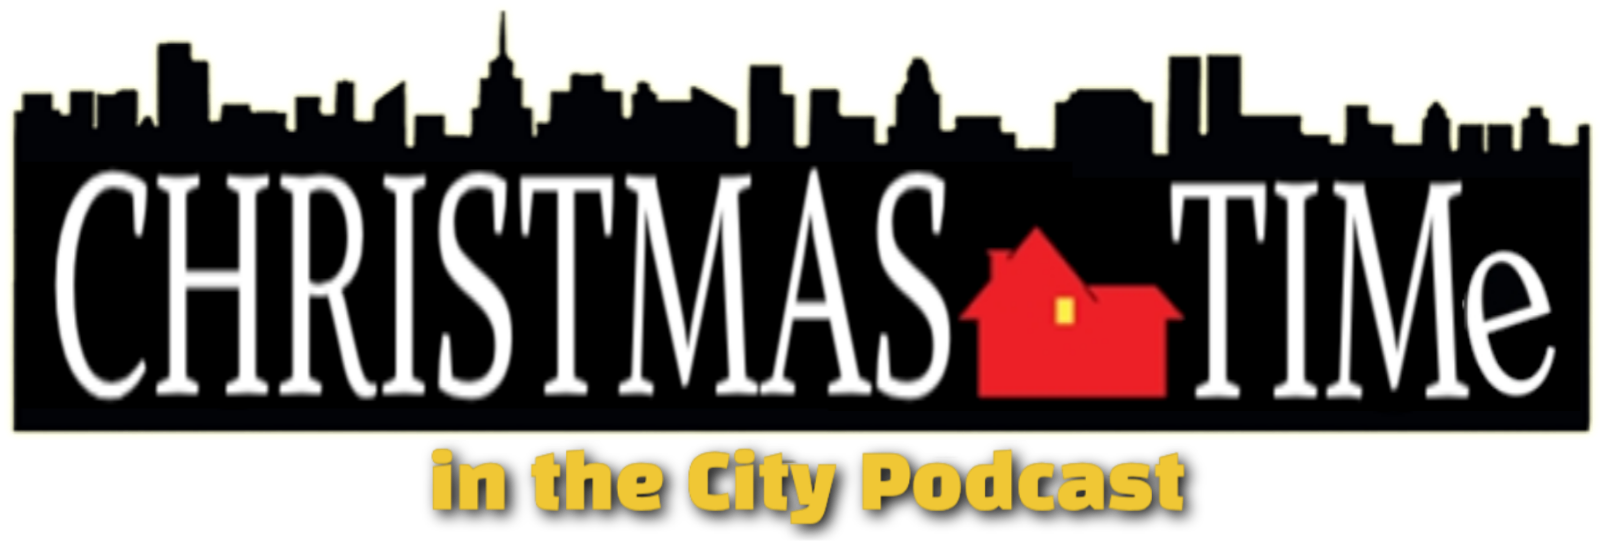 Christmas Time in the City Podcast